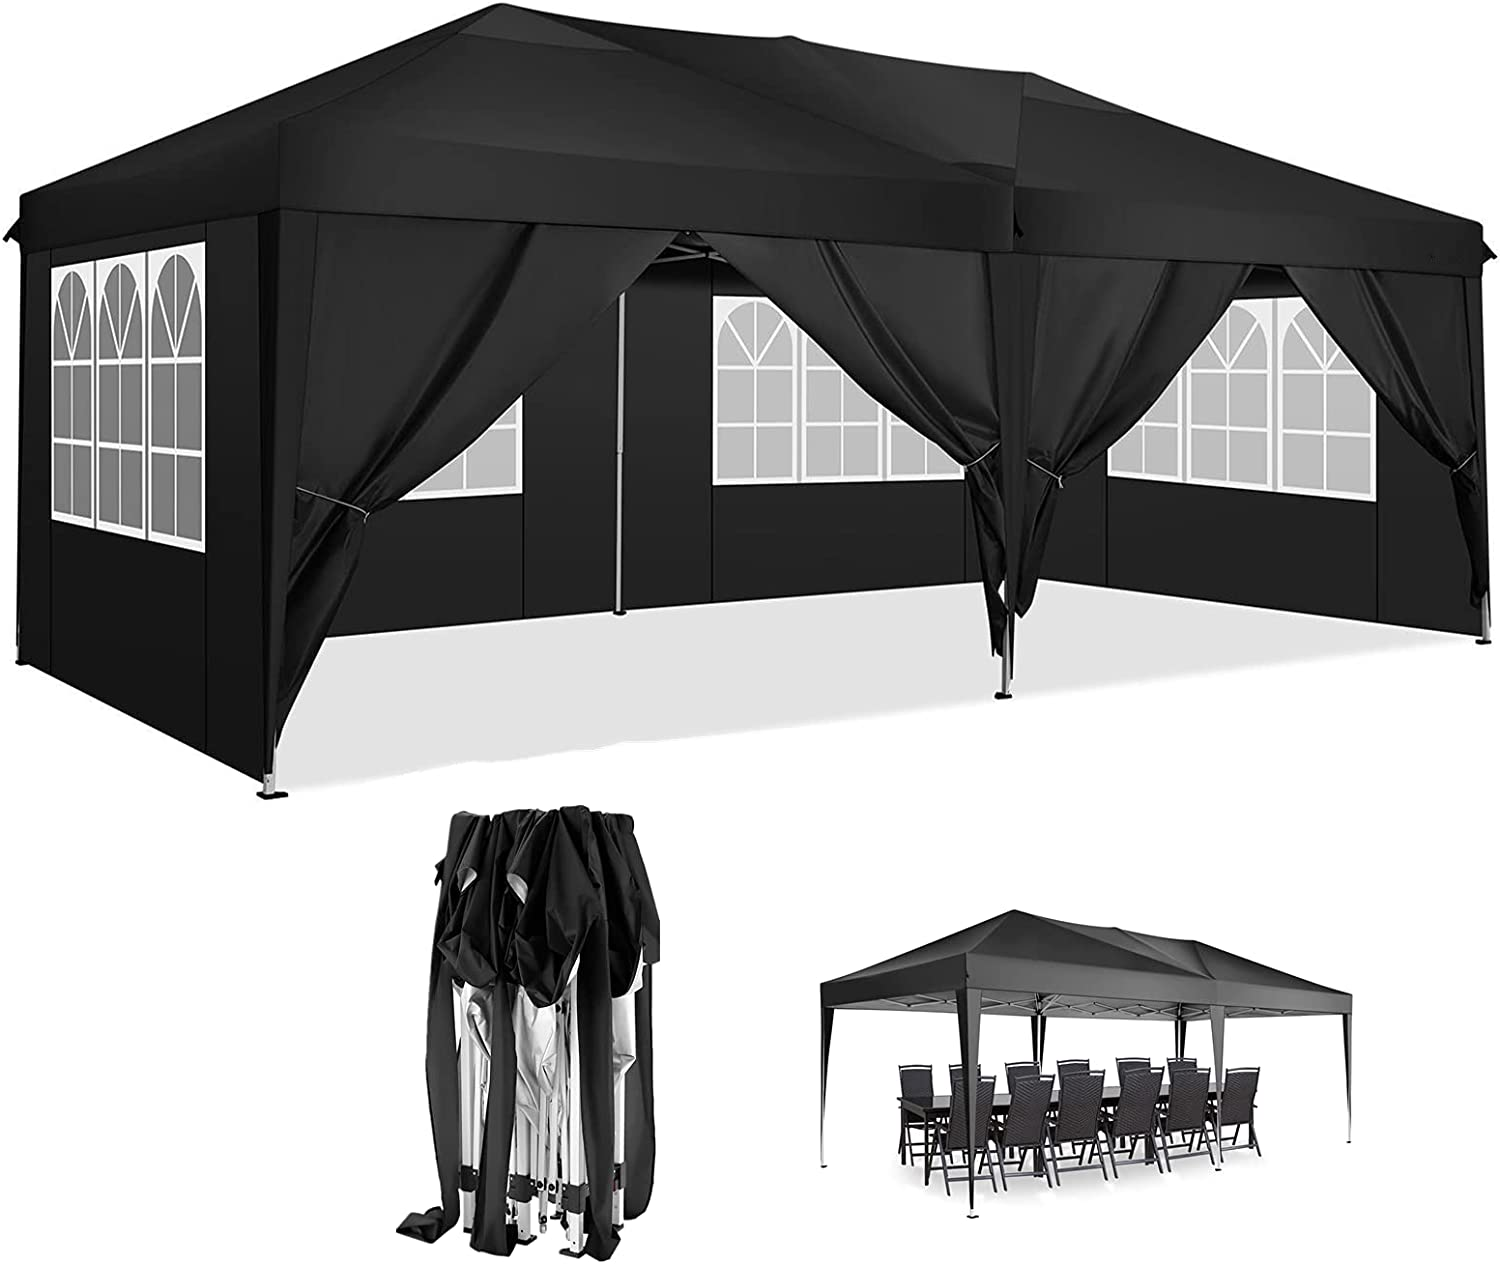 Pop-up Canopy Tent 10x20 Max 51% OFF Commercial Outdoor Beac Shelter Ranking TOP4 Instant